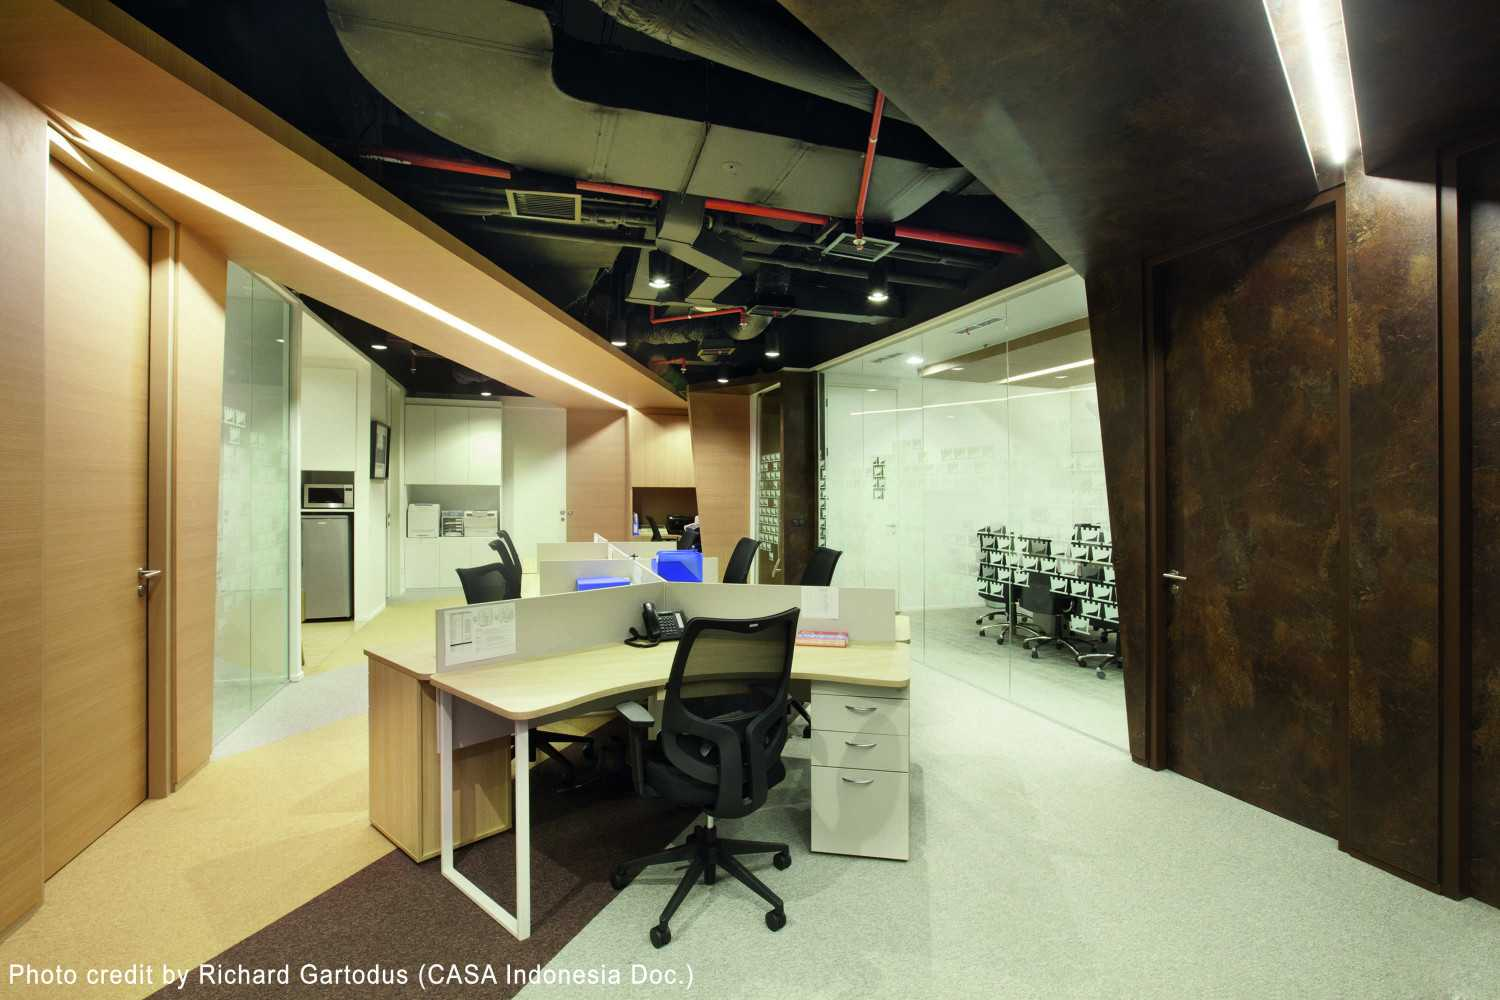 Tms Creative Pt Castlerock Consulting Office  Kebayoran Baru Jakarta Kebayoran Baru Jakarta Tms-Catlerock-09 Modern 39497